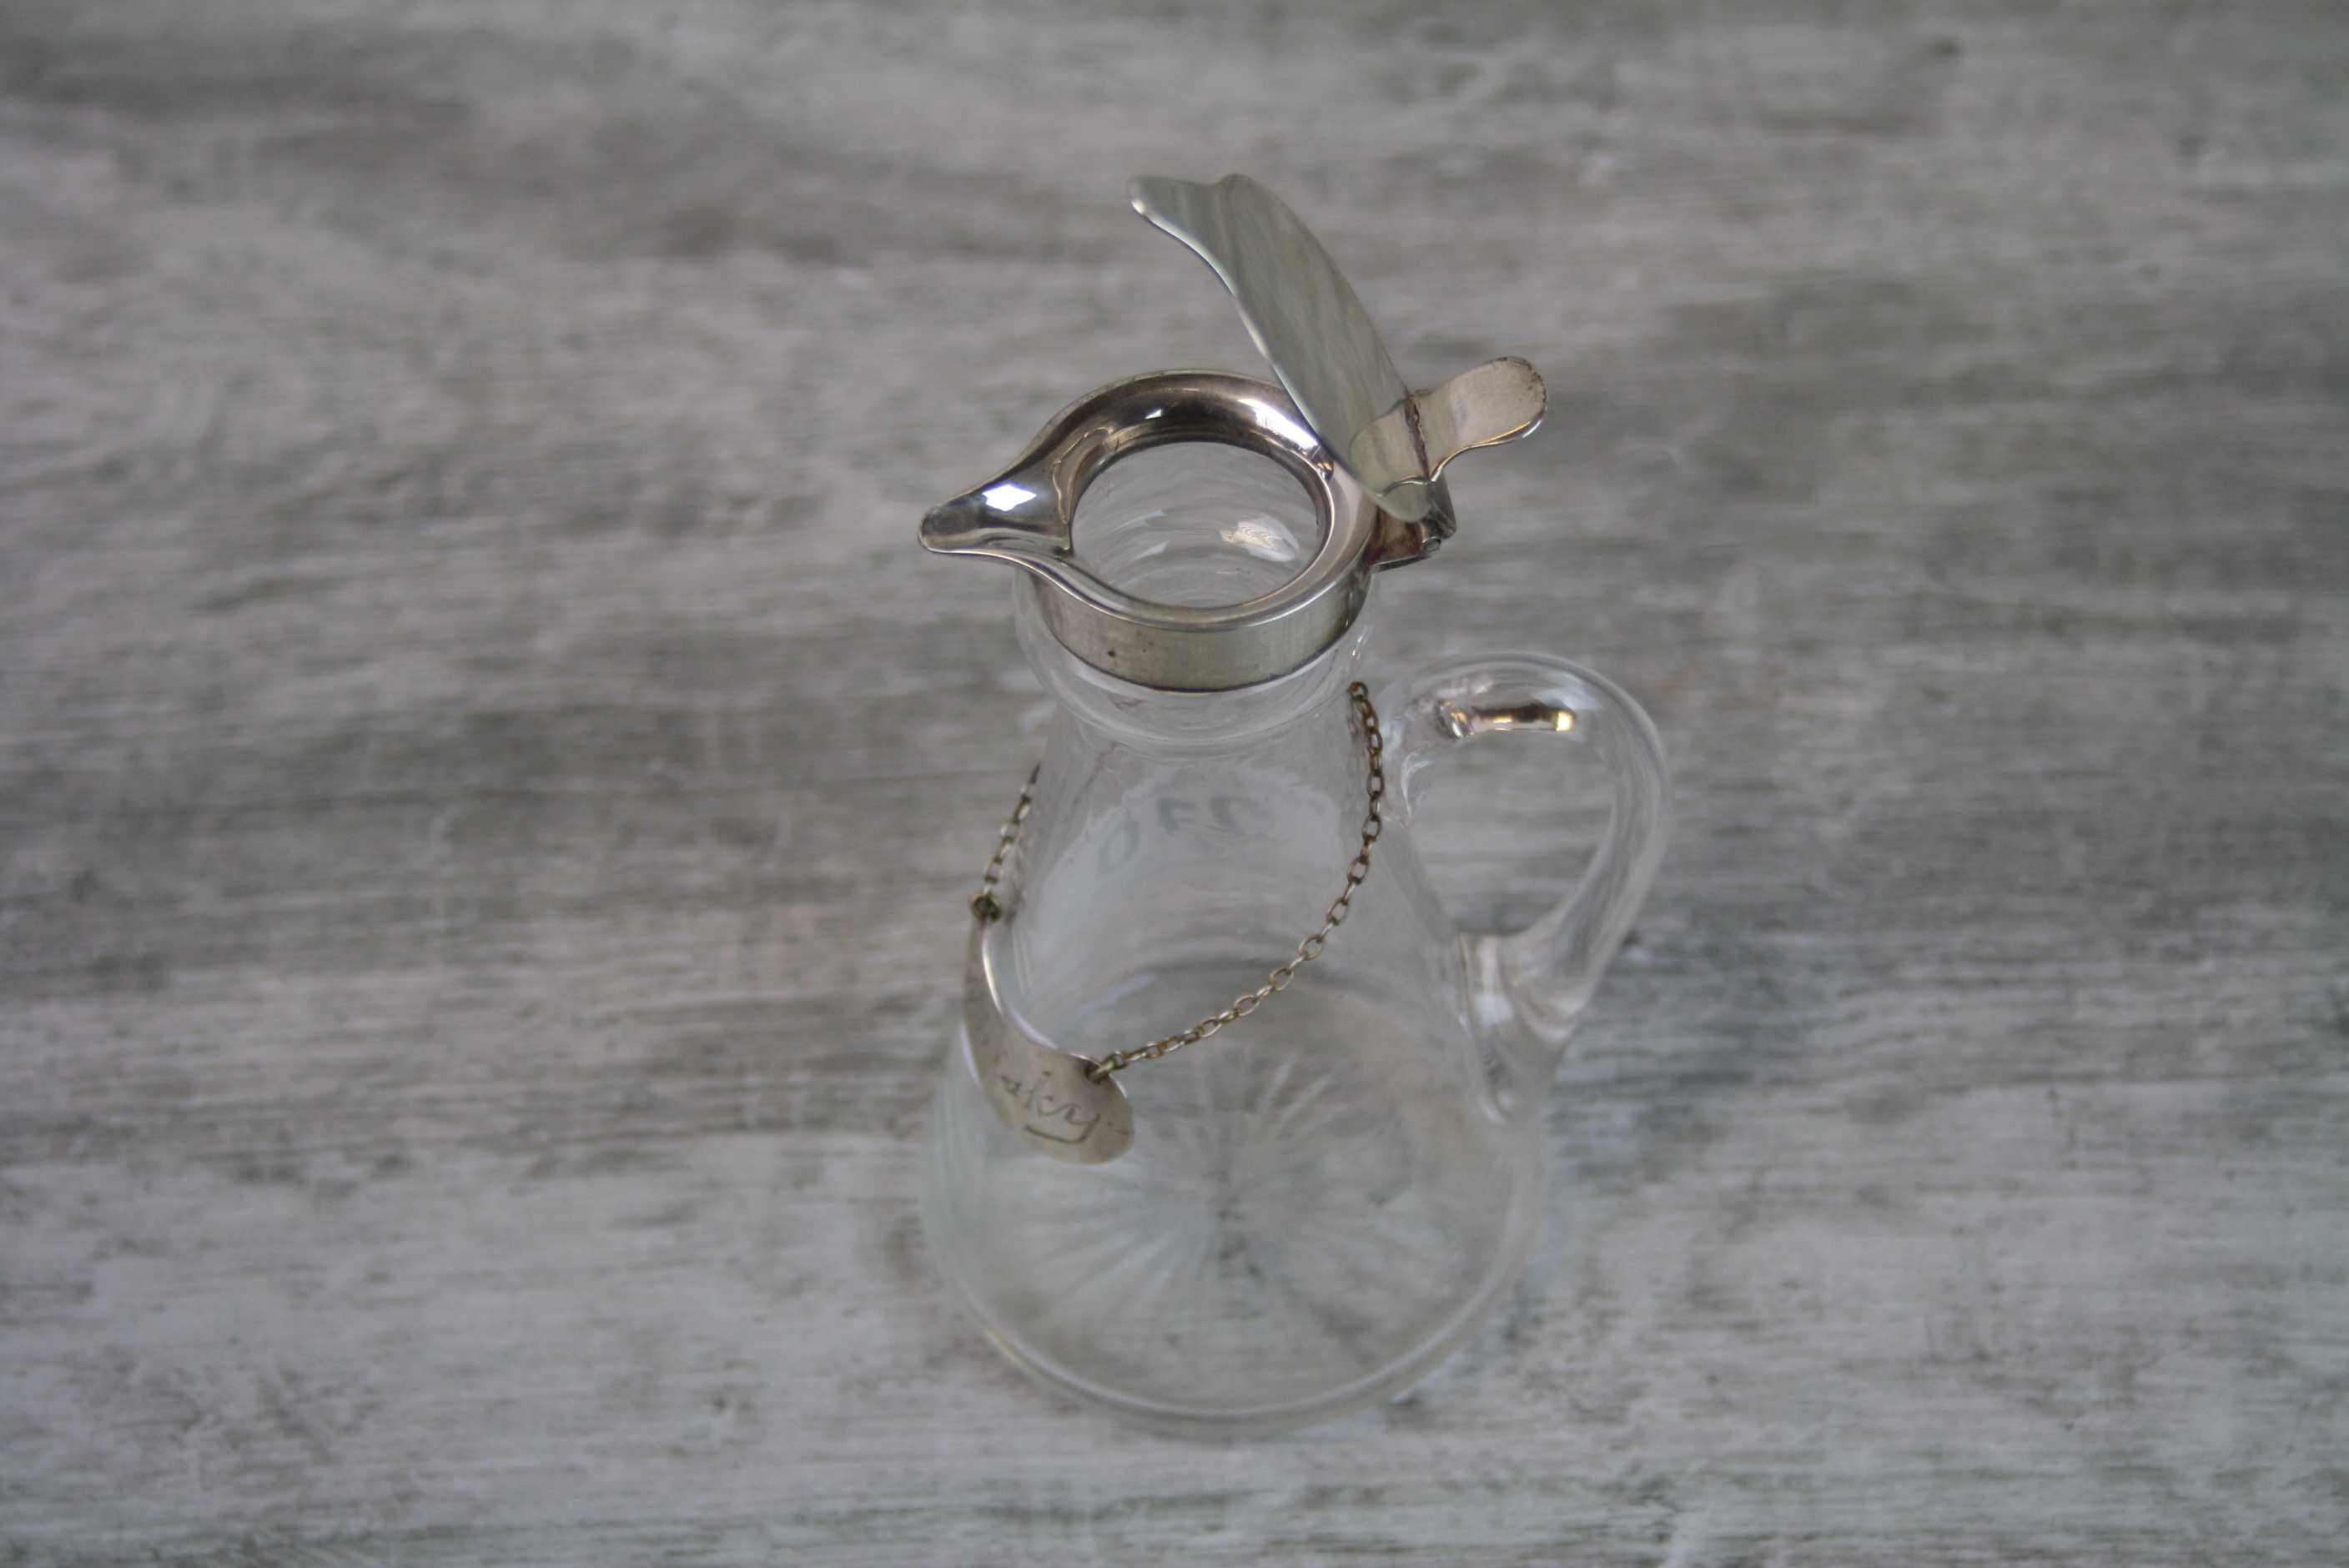 Edwardian silver topped whisky noggin, glass body of plain form with cut glass star design to - Image 4 of 4